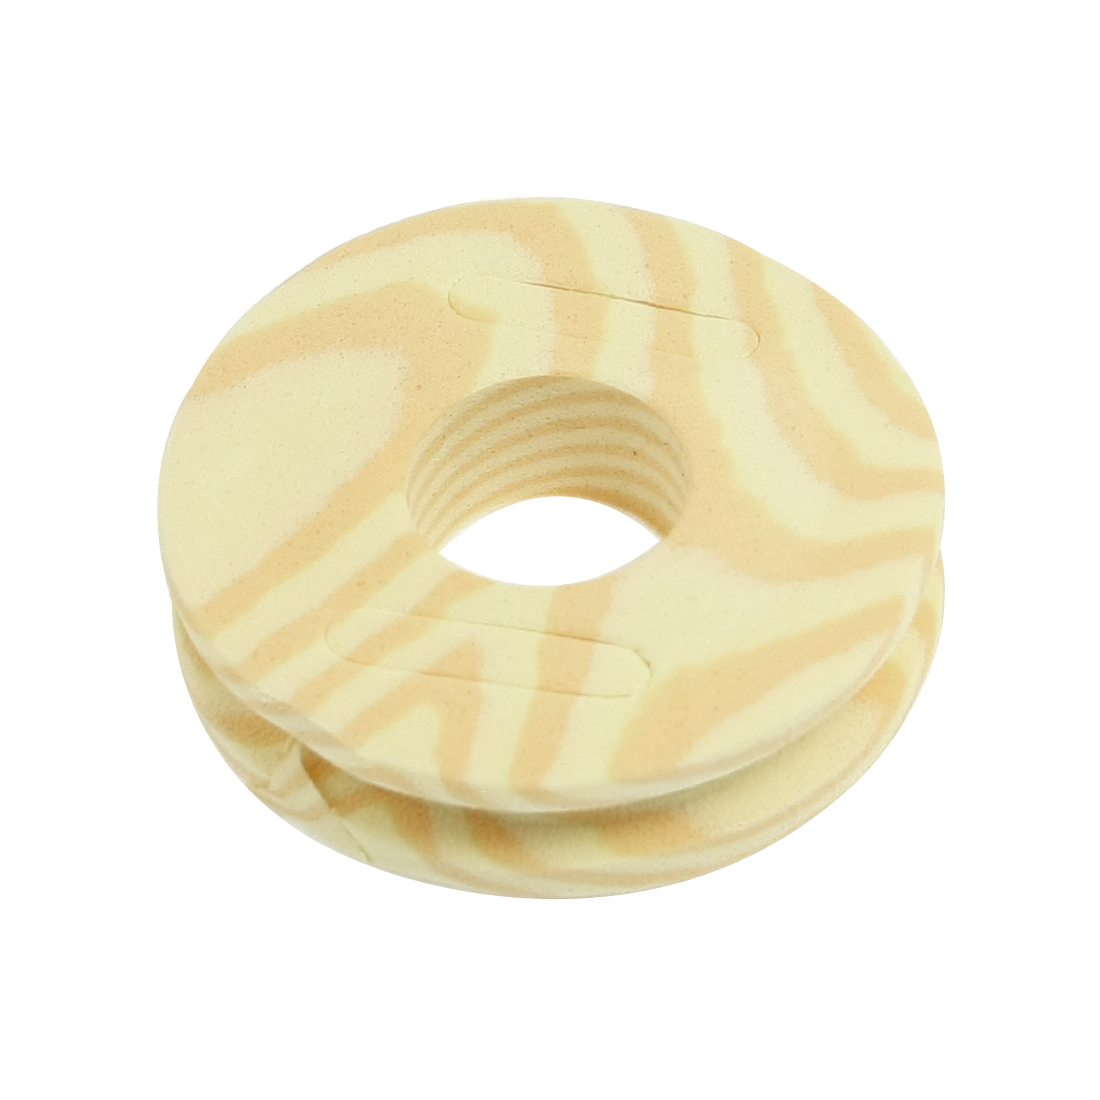 48mm Diameter Fishing Fitting Round Beige Foam Spool